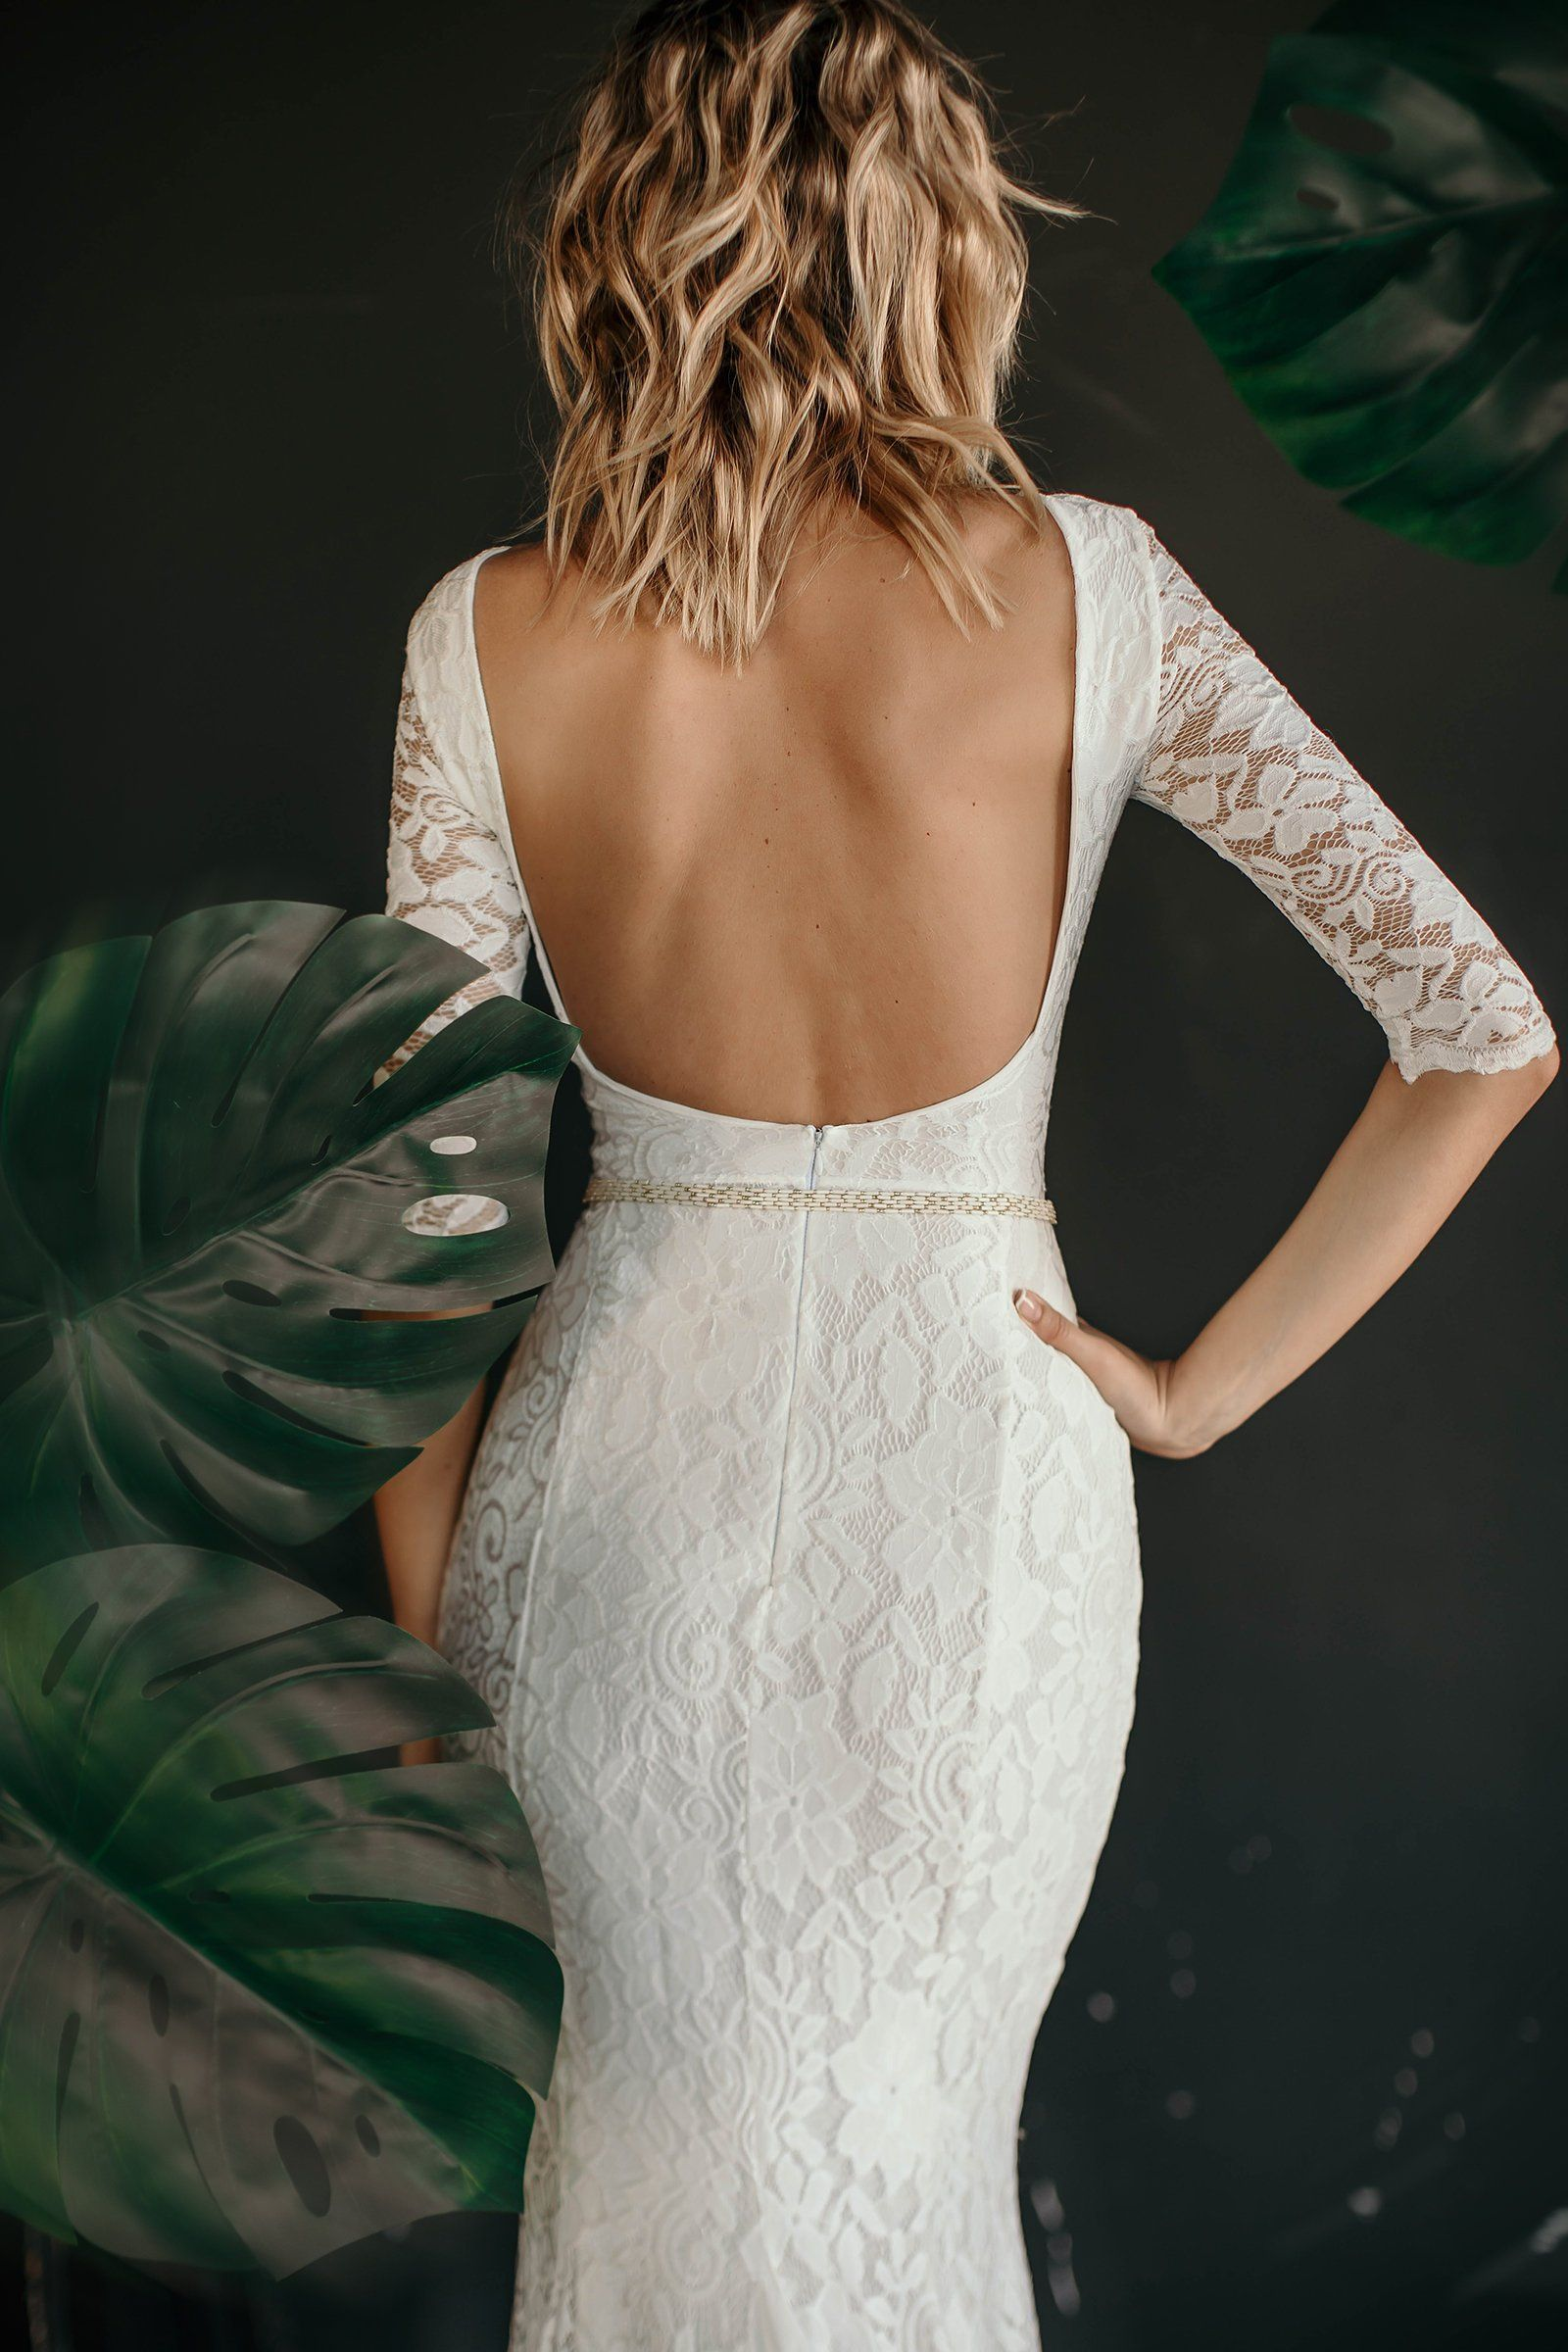 Small wedding dresses  Absolutely Gorgeous Backless Wedding Dresses from Etsy  Pinterest